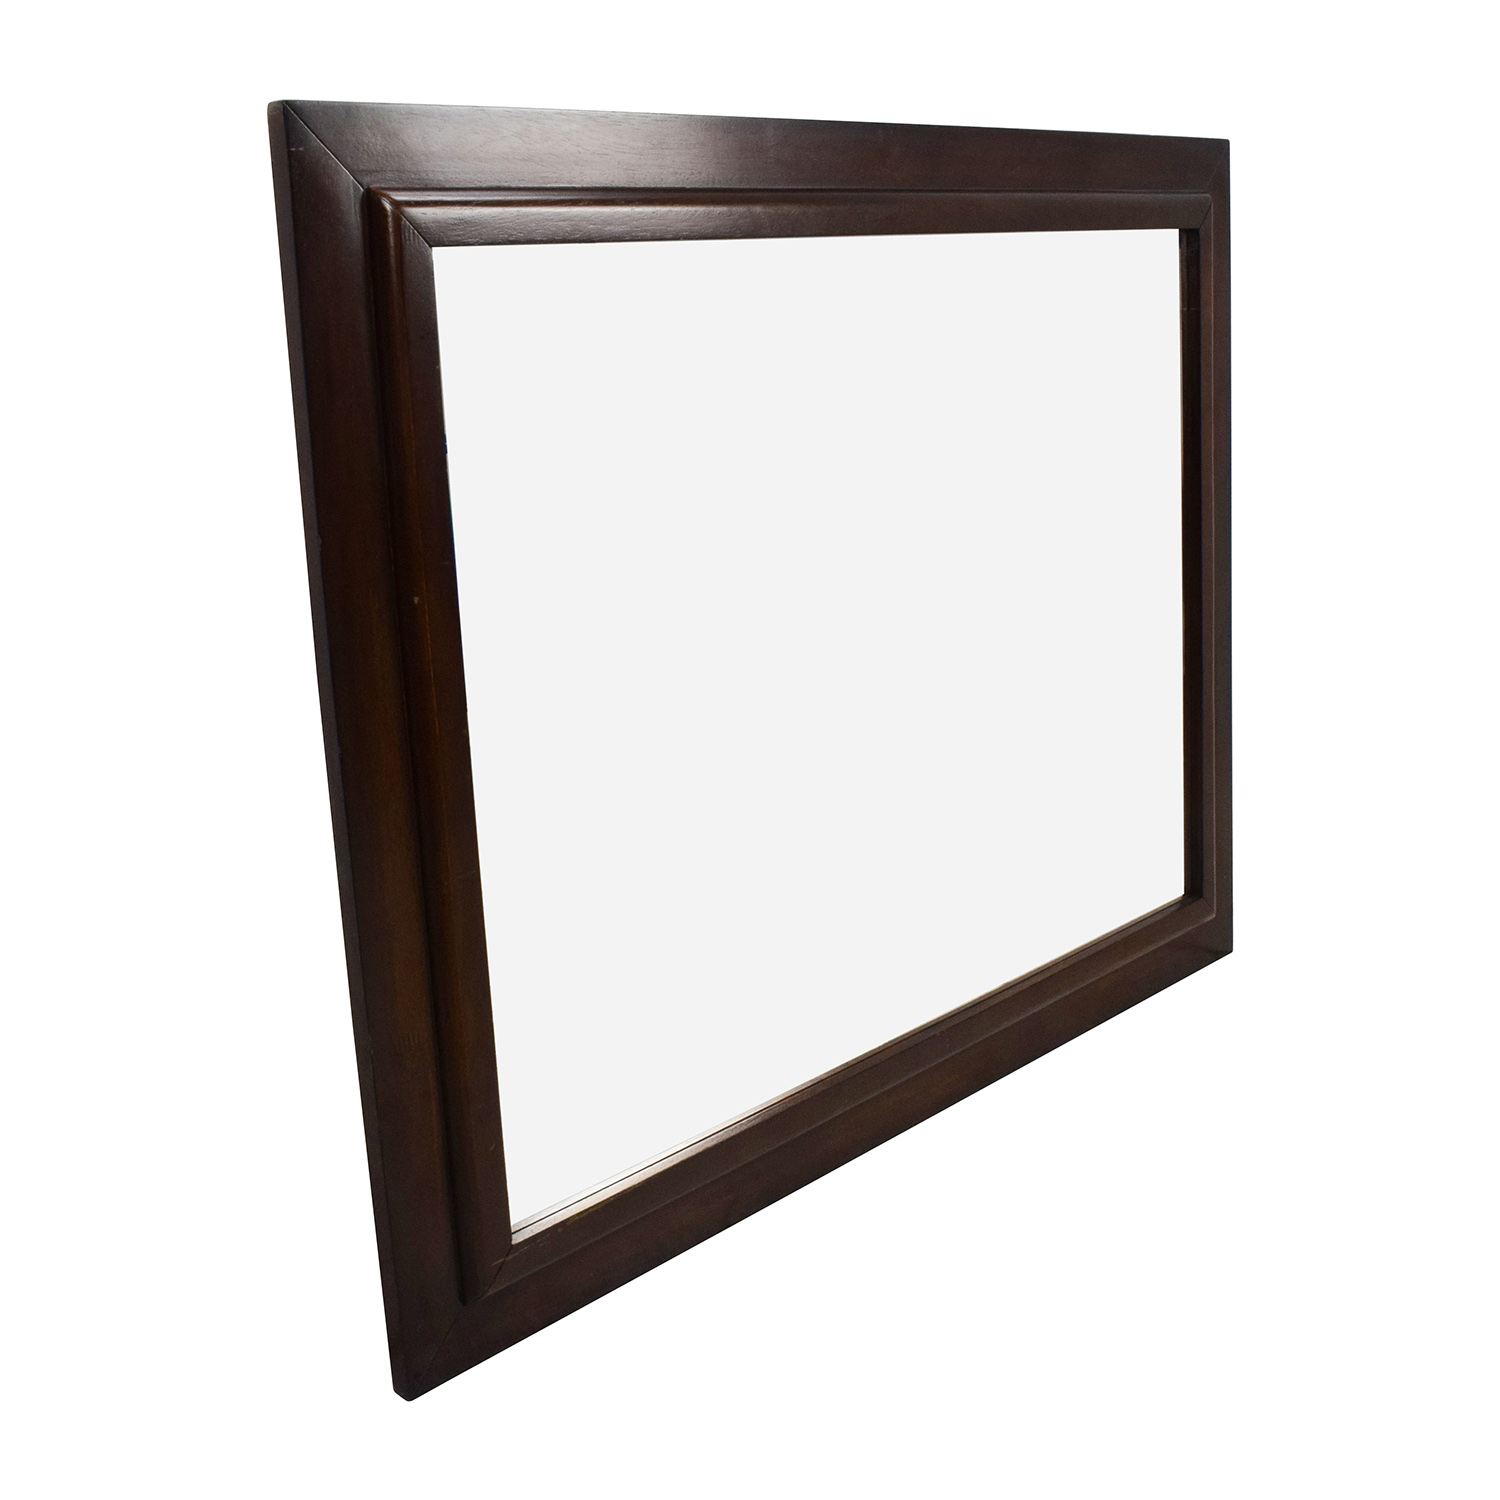 Wooden framed wall mirrors full size of wall mirrors for Large wall mirror wood frame